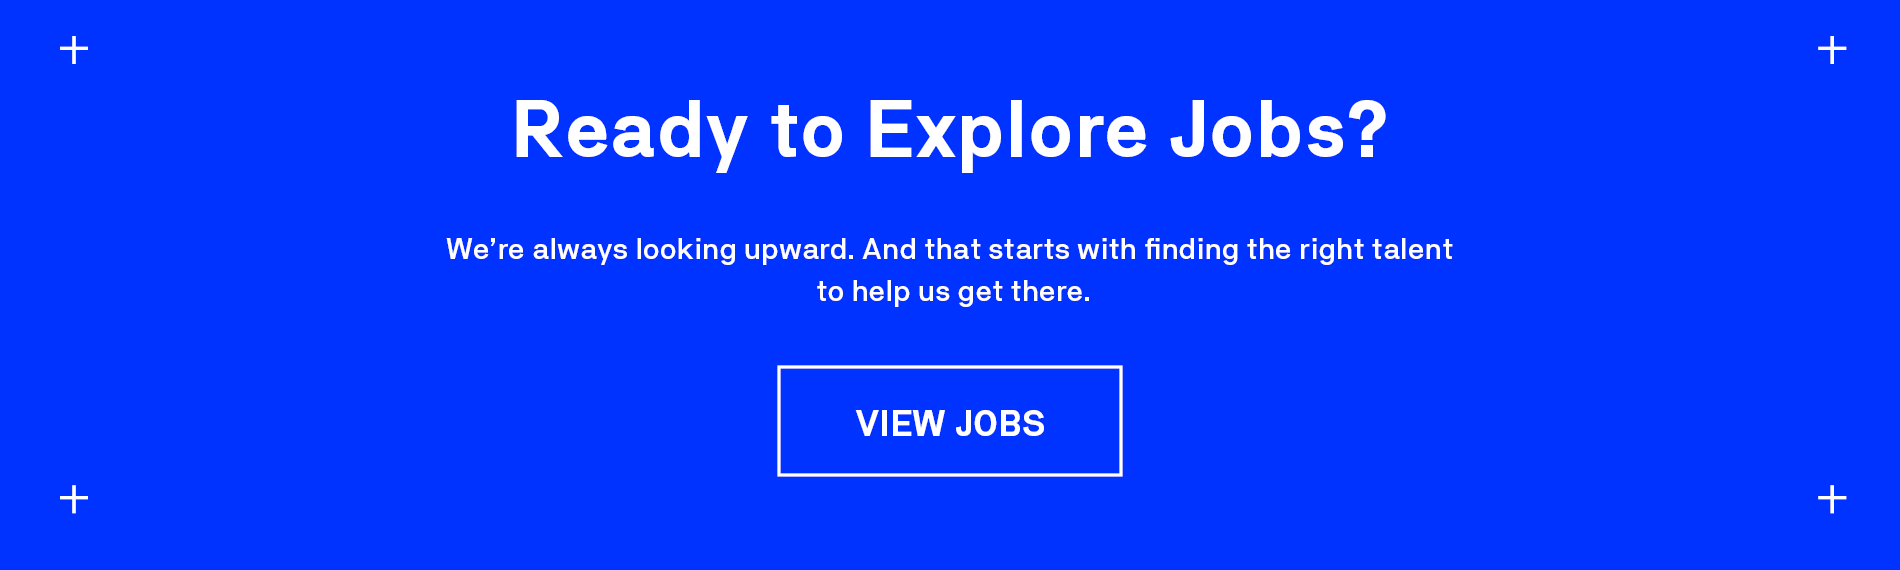 View open jobs with Evernorth